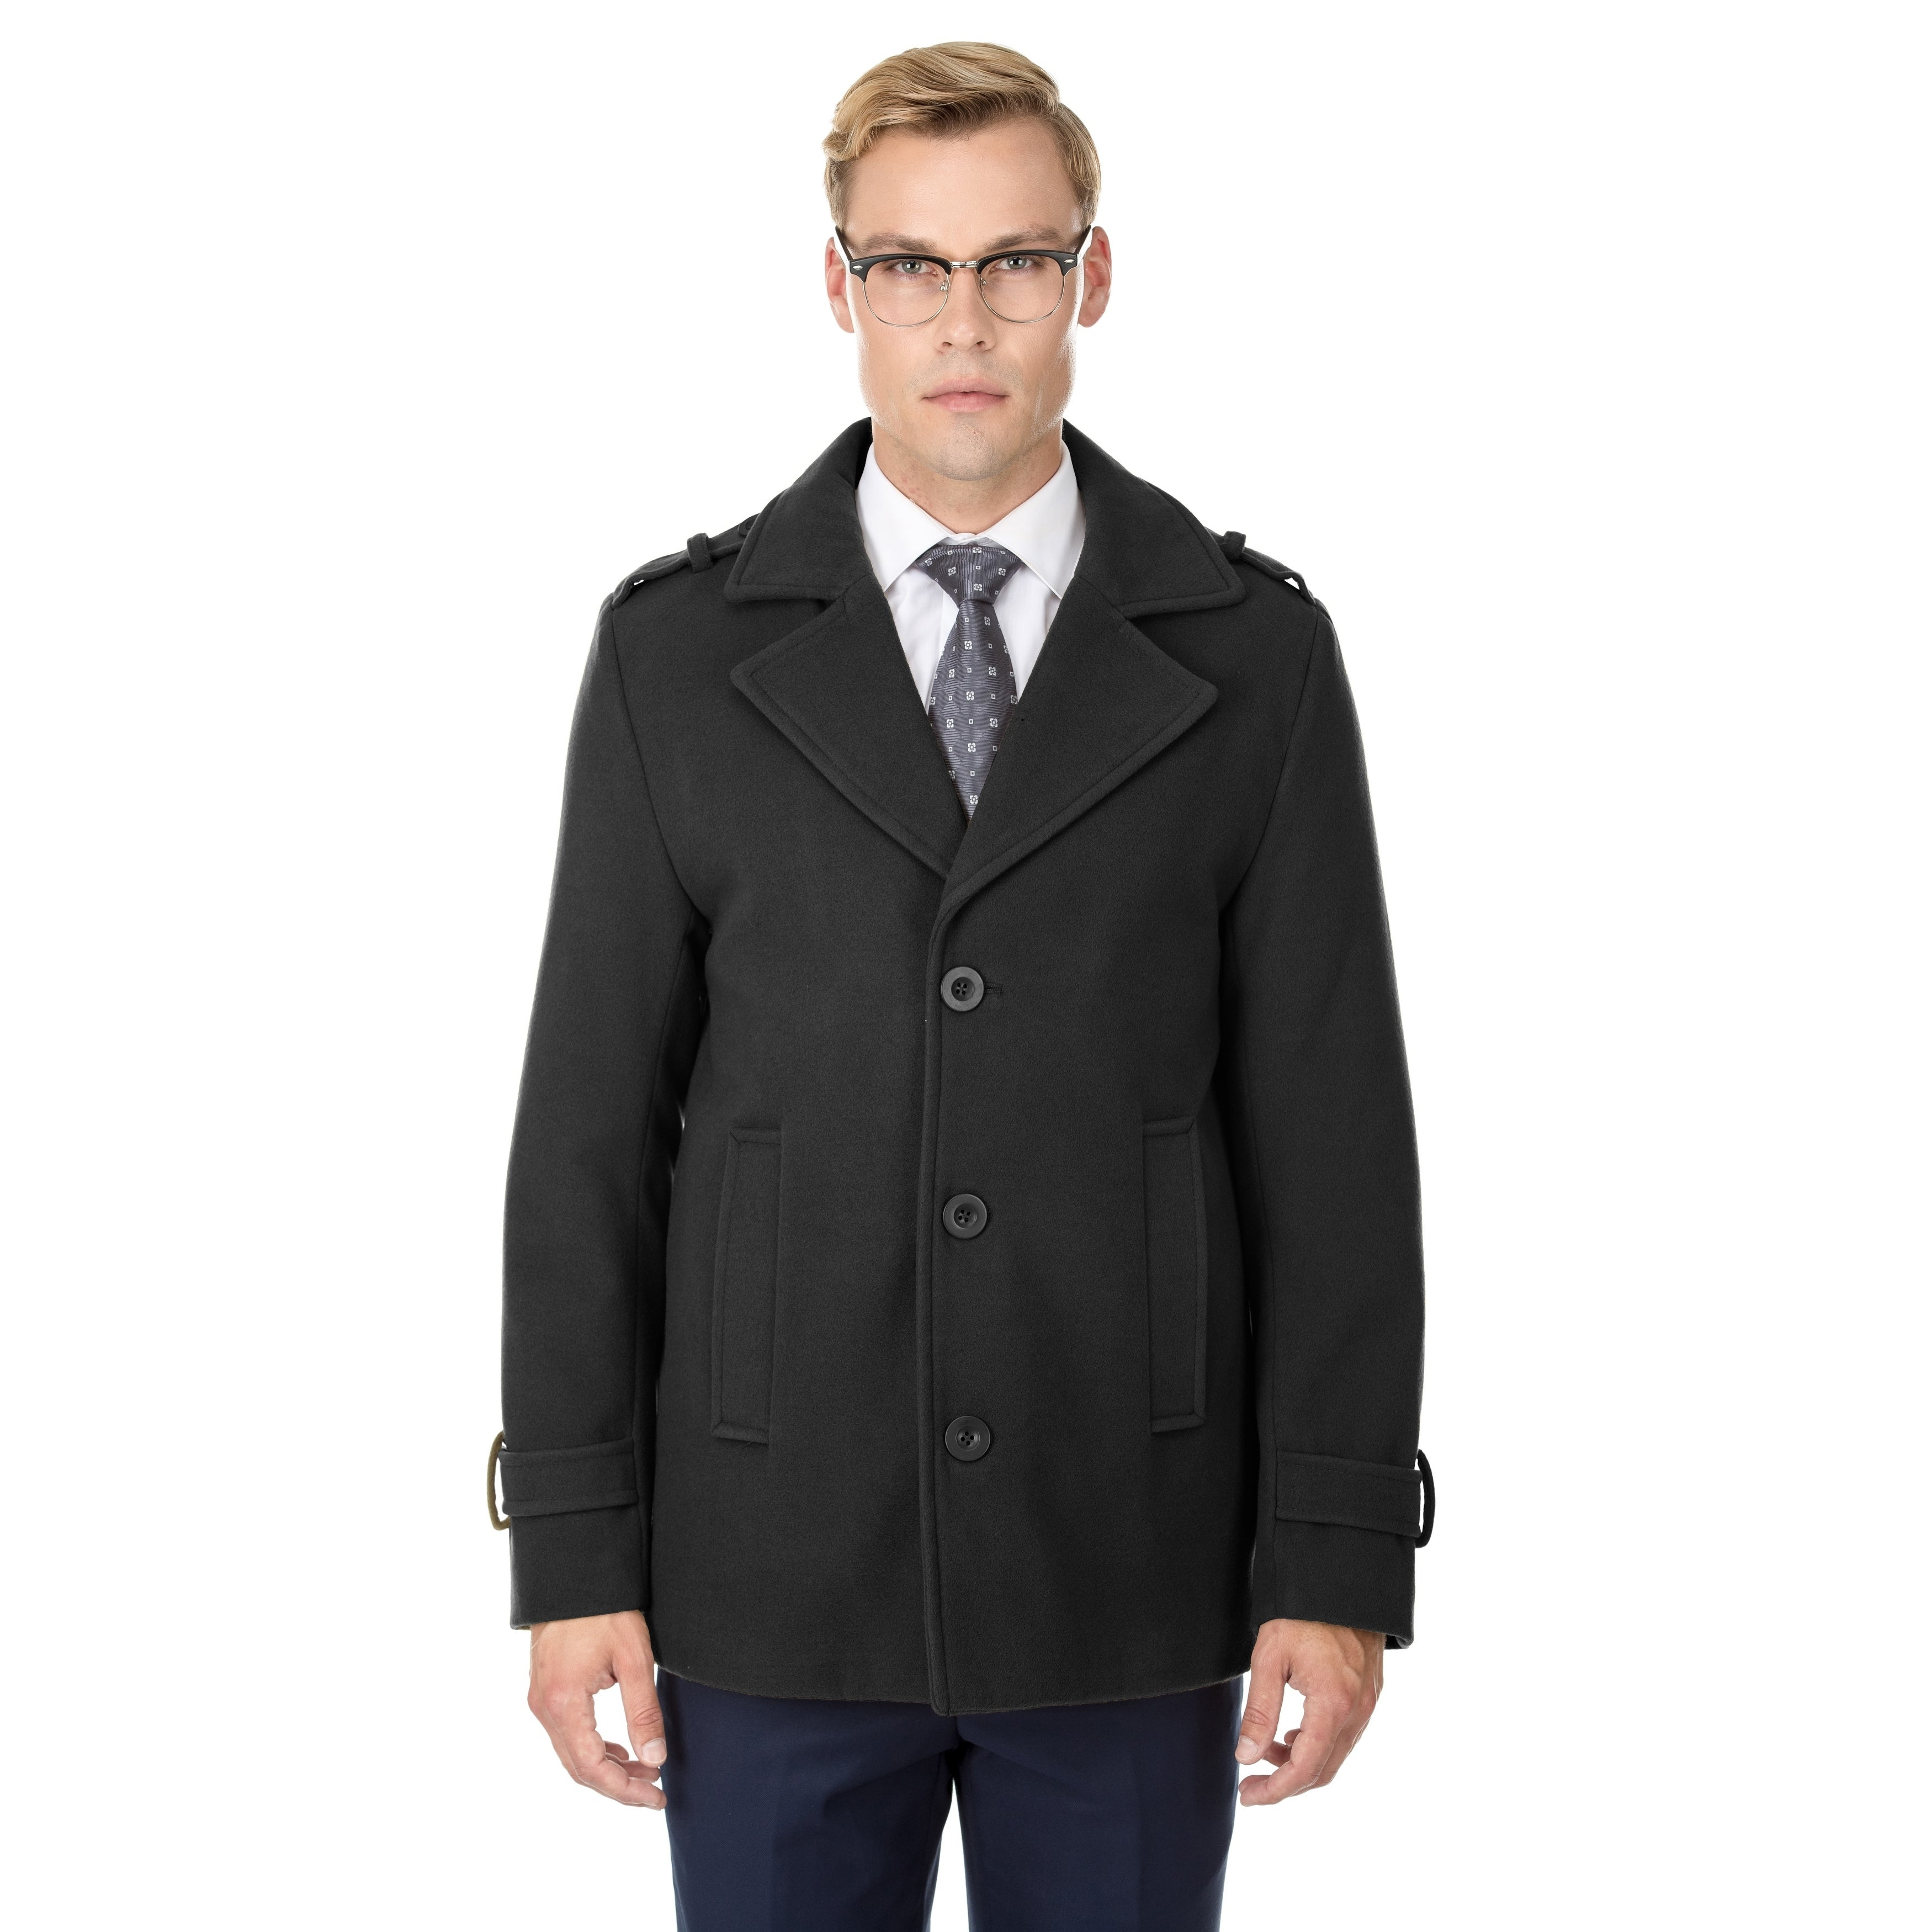 2018 New Cheap Price Outlet COATS & JACKETS - Overcoats Individual 1ZYIKCM5X